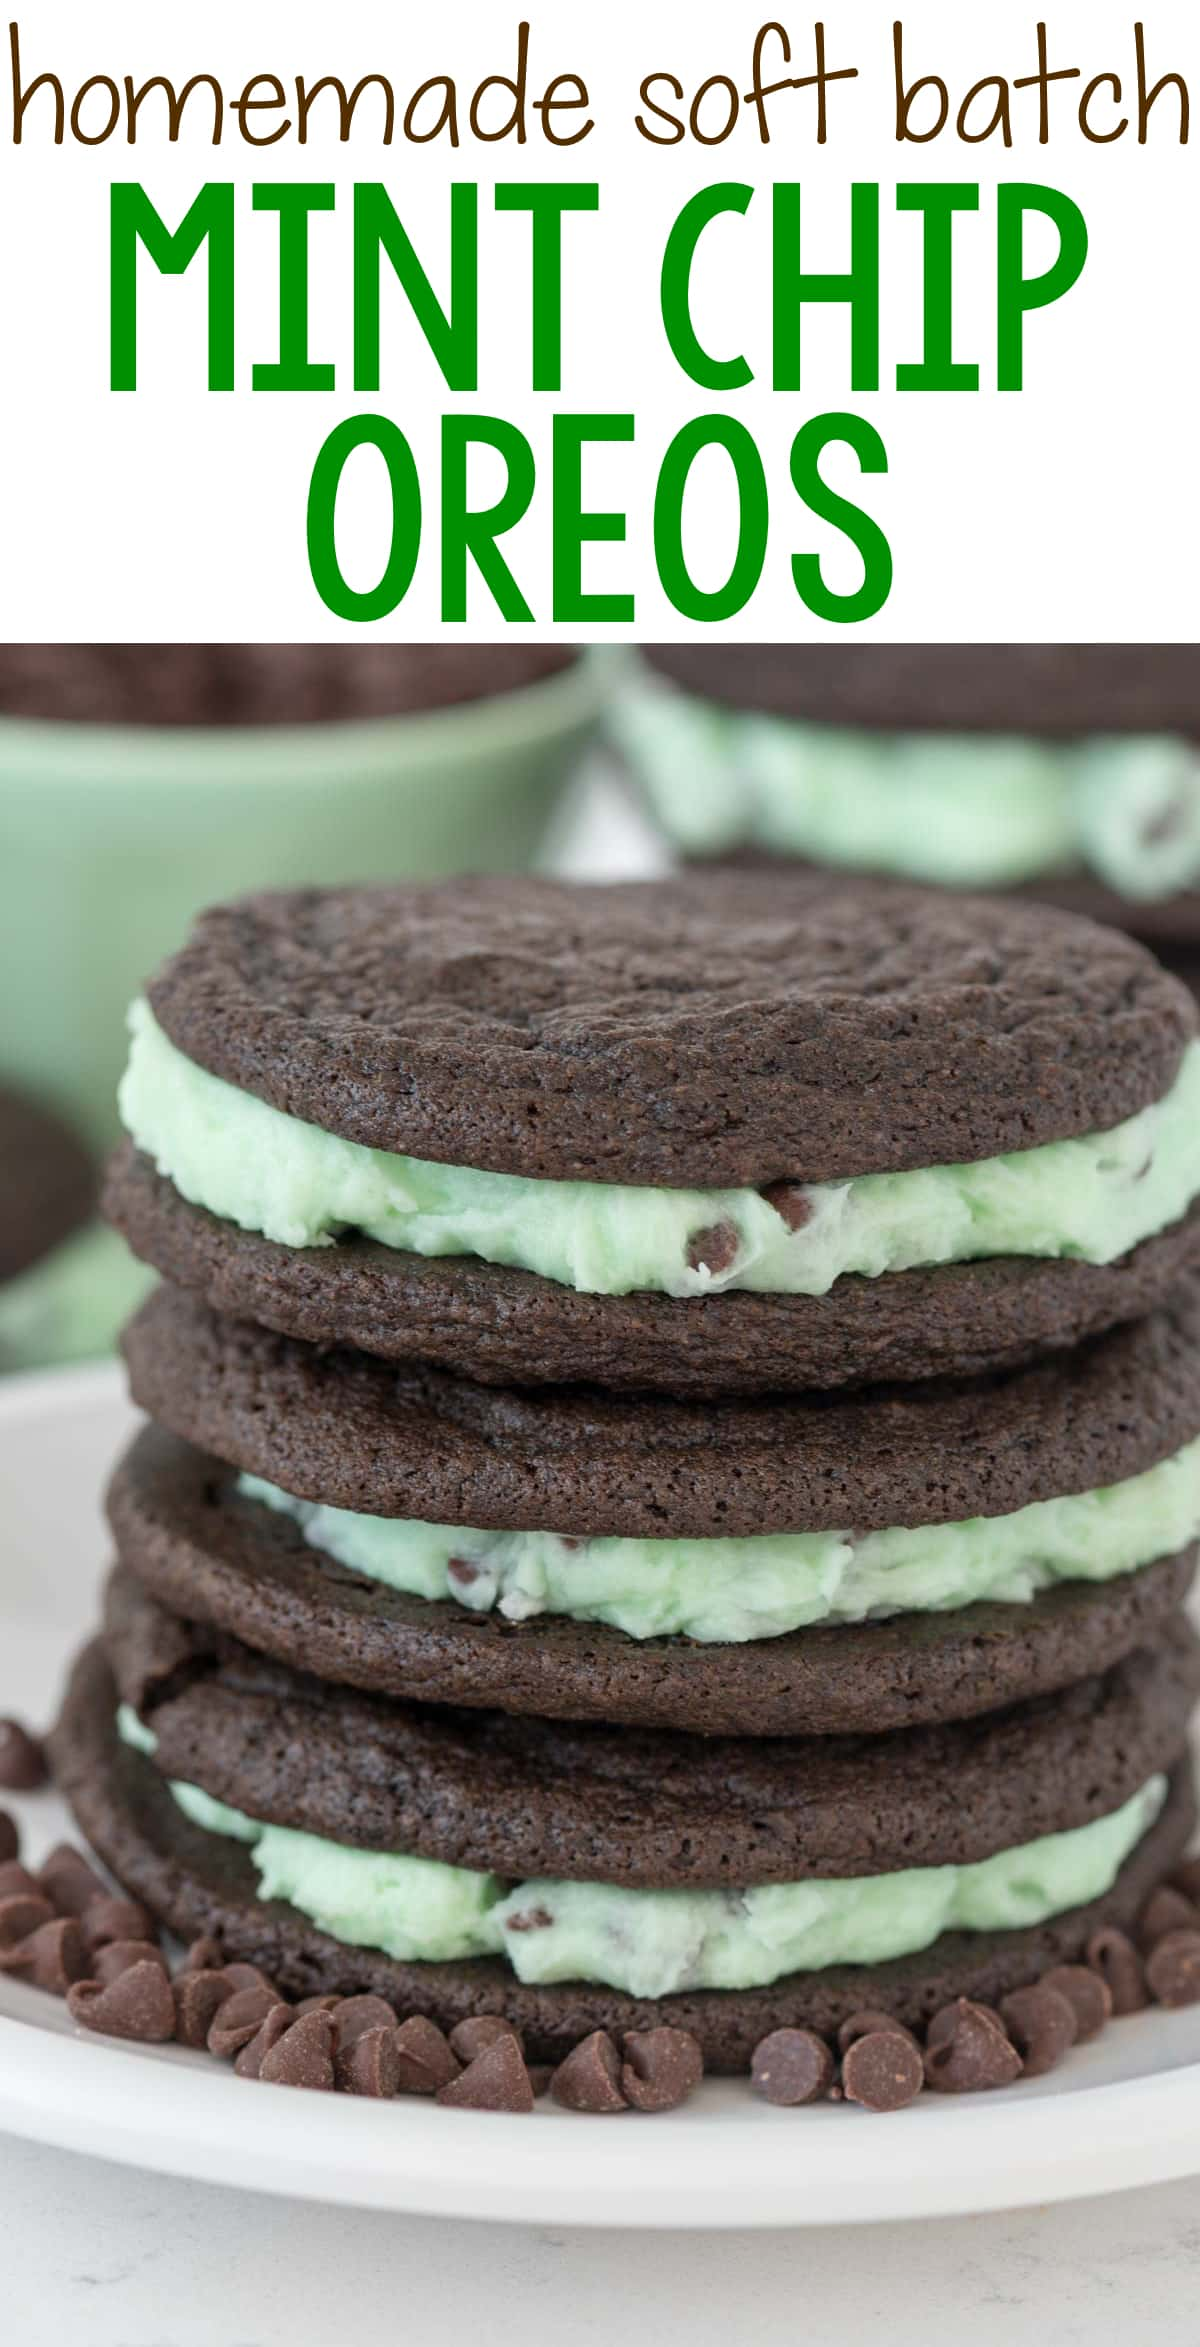 Homemade Mint Chip Oreos - this EASY homemade Oreo recipe is soft batch and filled with mint chip filling! Mint lovers will LOVE this cookie recipe.